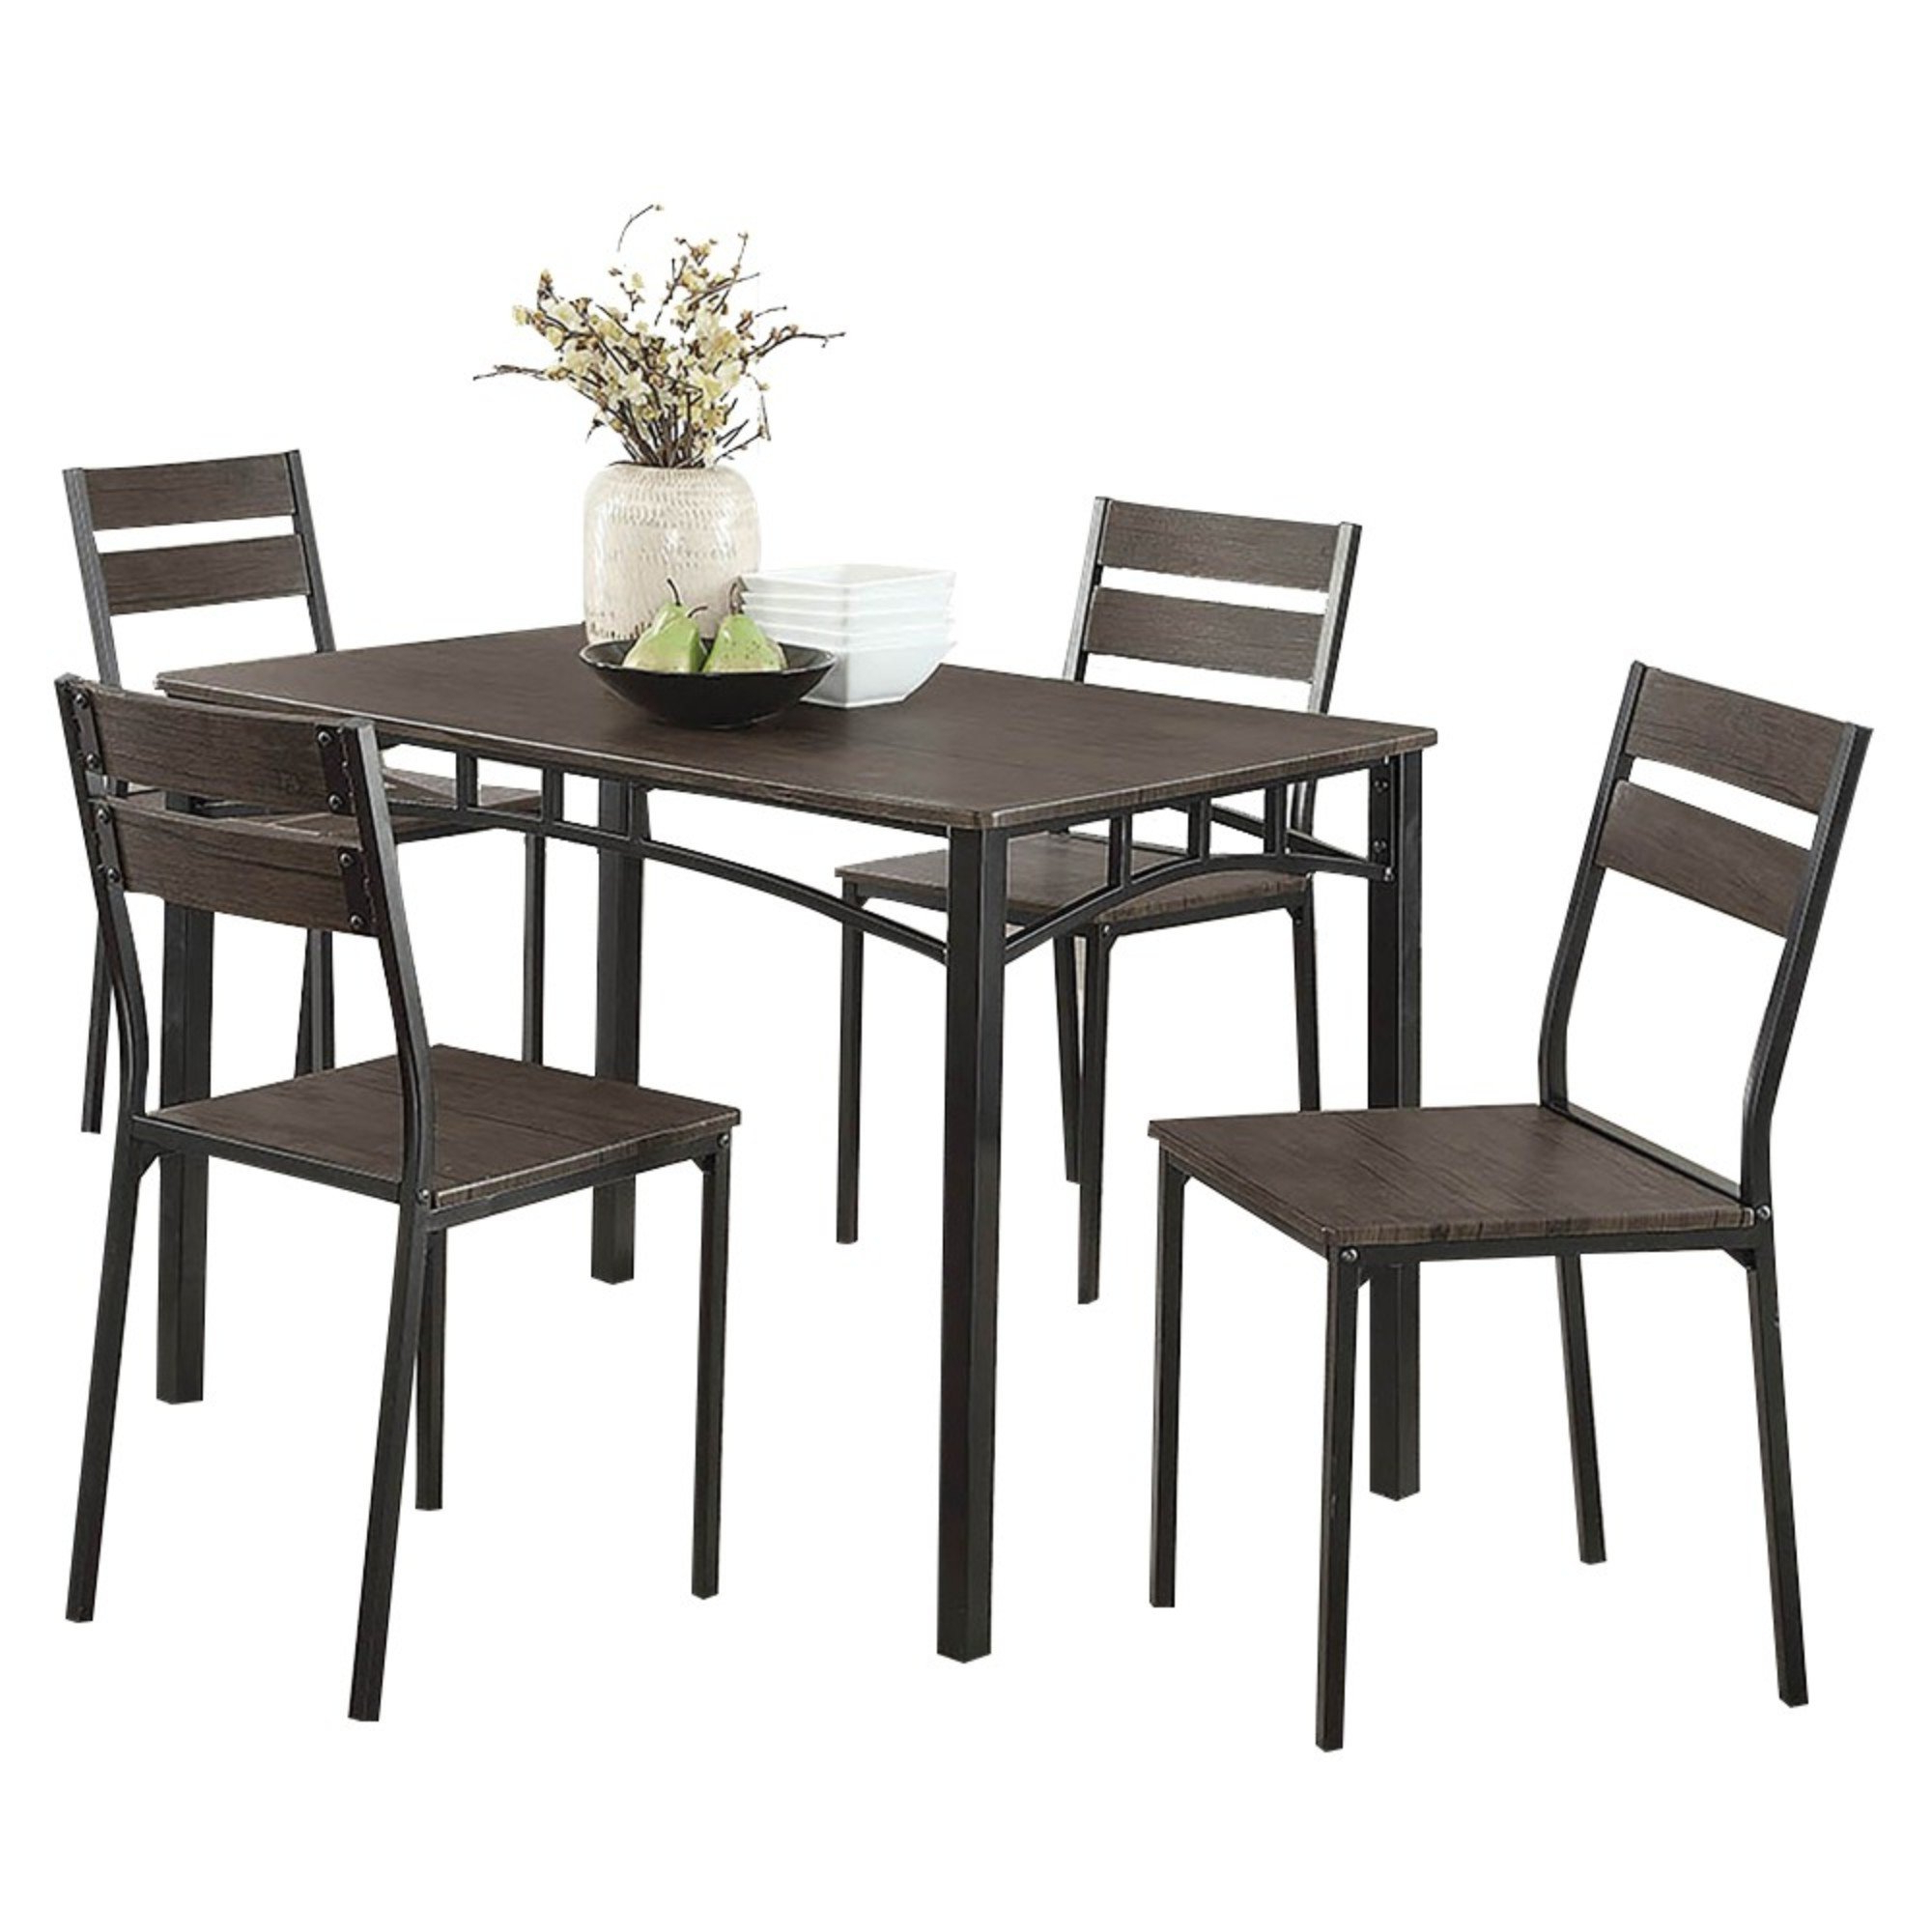 Well Known Union Rustic Brodhead Wooden 5 Piece Counter Height Dining Table Set In Maynard 5 Piece Dining Sets (View 24 of 25)